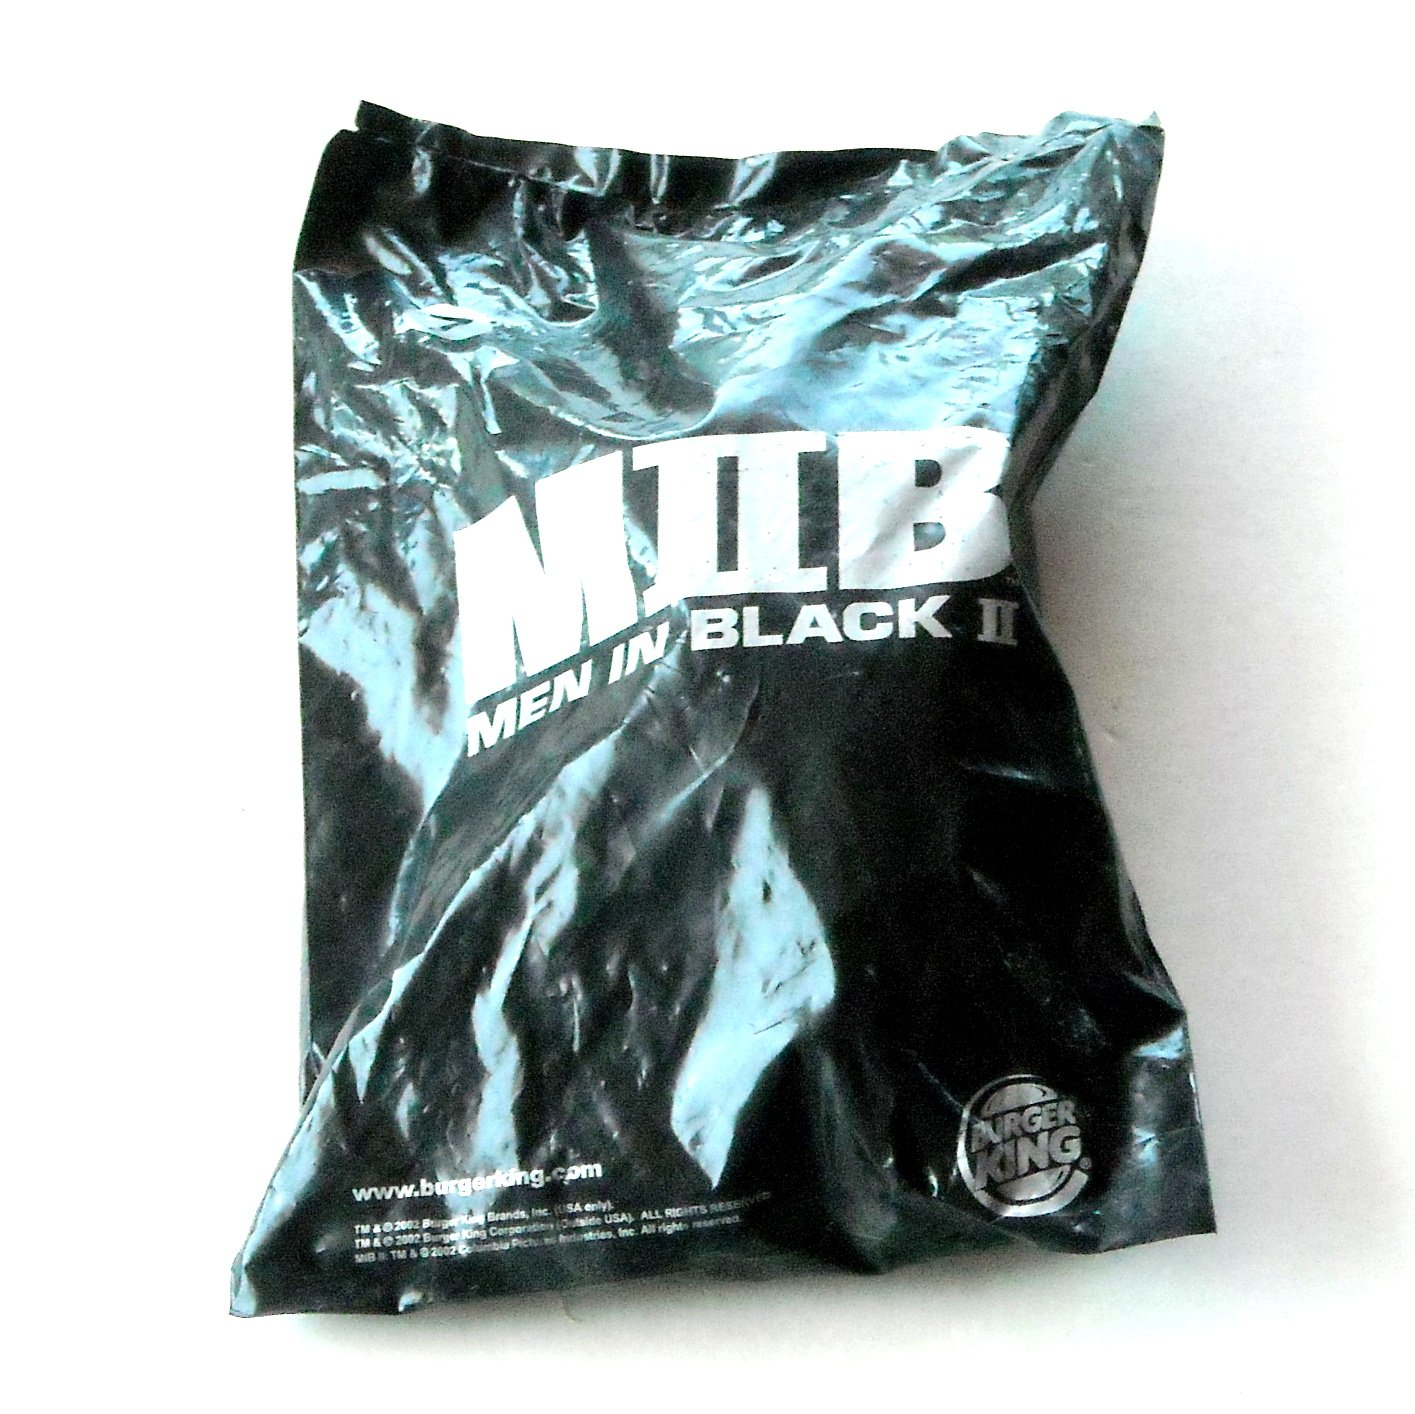 Men In Black 2 MIIB Burger King Toy Figure No 7